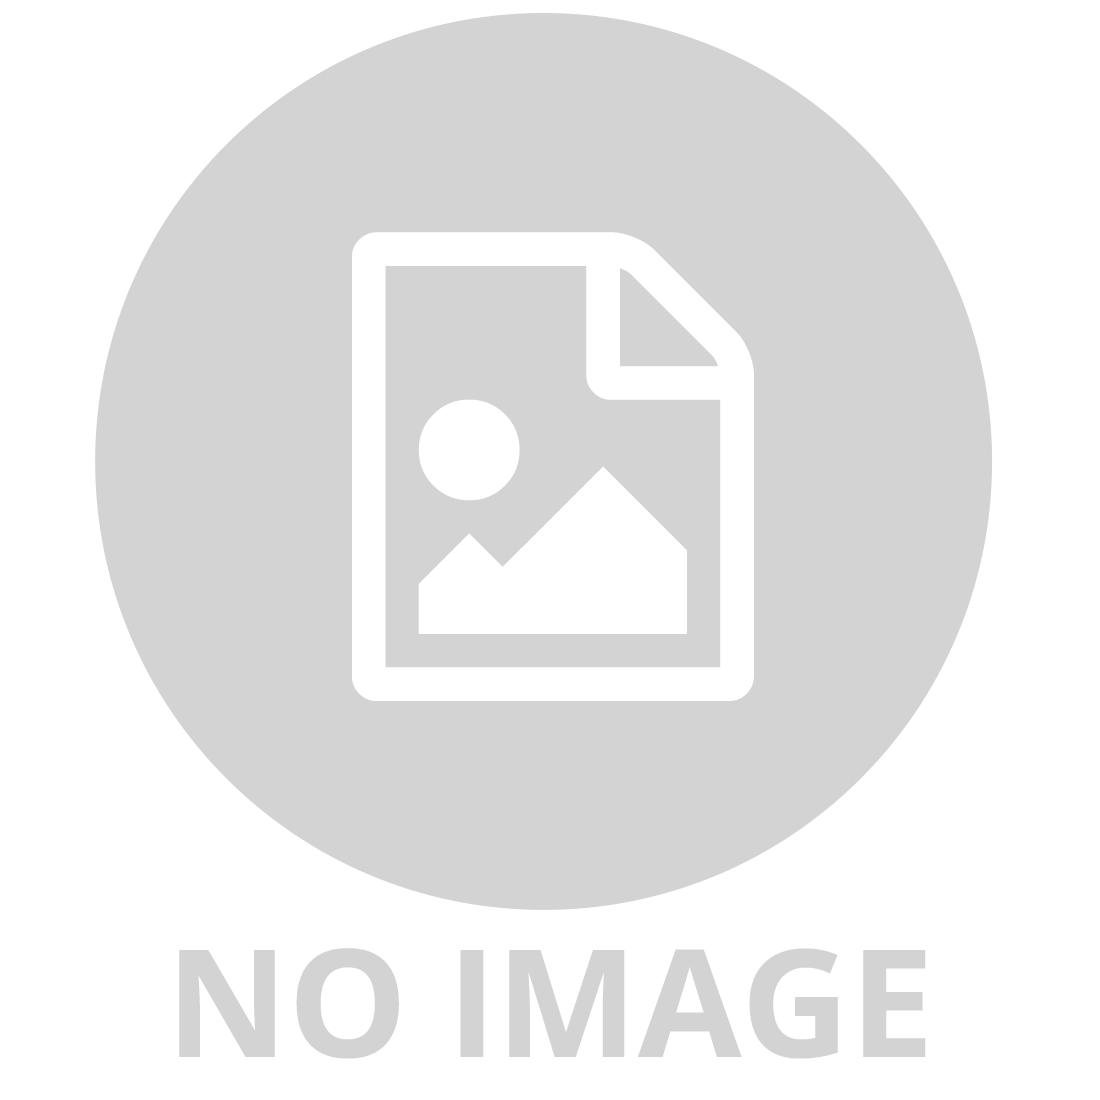 Sahara Hot Air Heater & exhaust - White